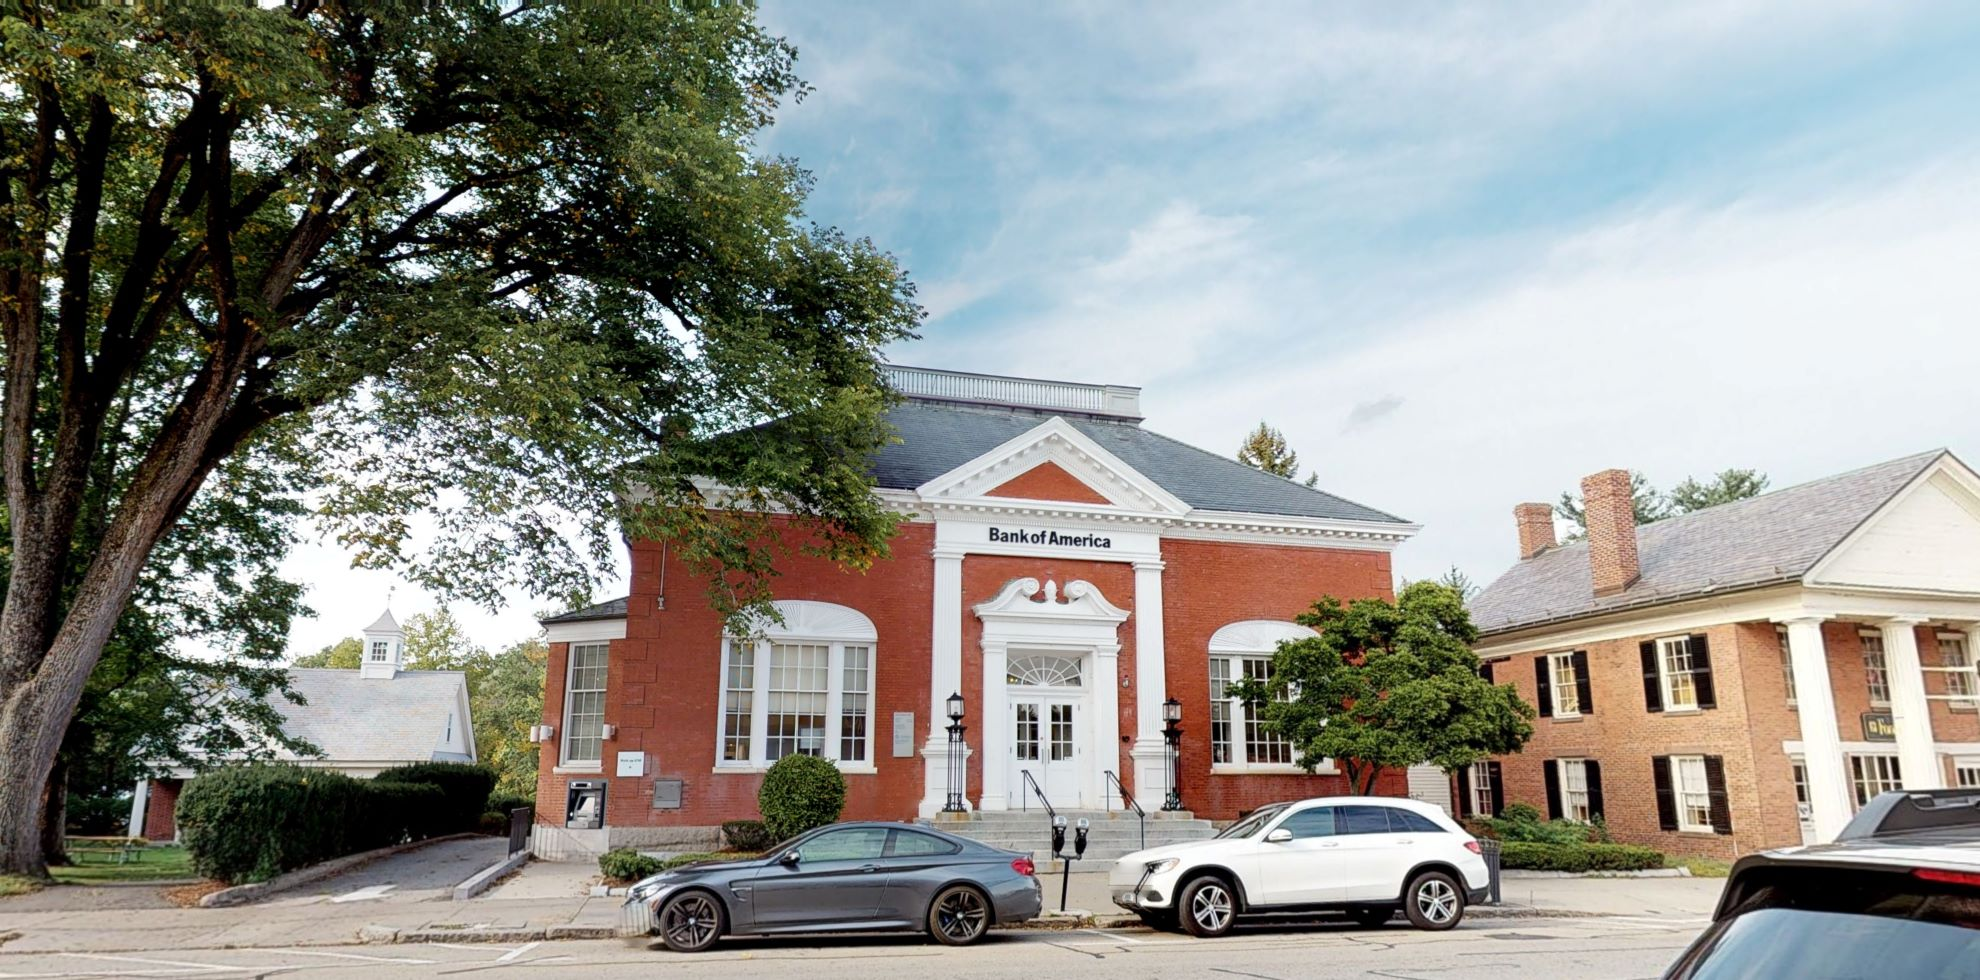 Bank of America financial center with drive-thru ATM   52 Main St, Concord, MA 01742